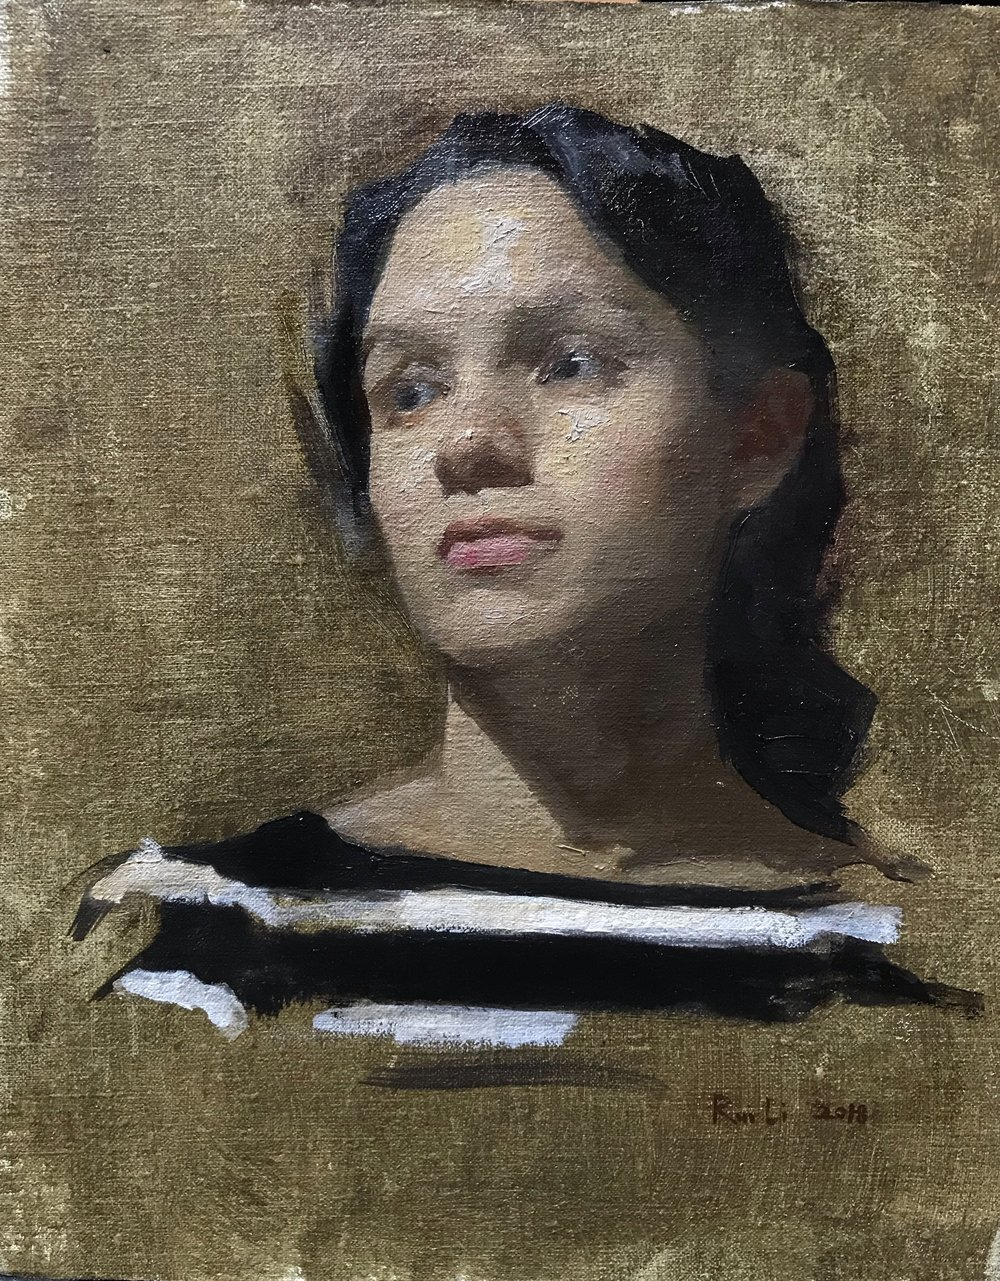 Sandra  by Rachel Li, 2018 8 x 10 in, oil on linen